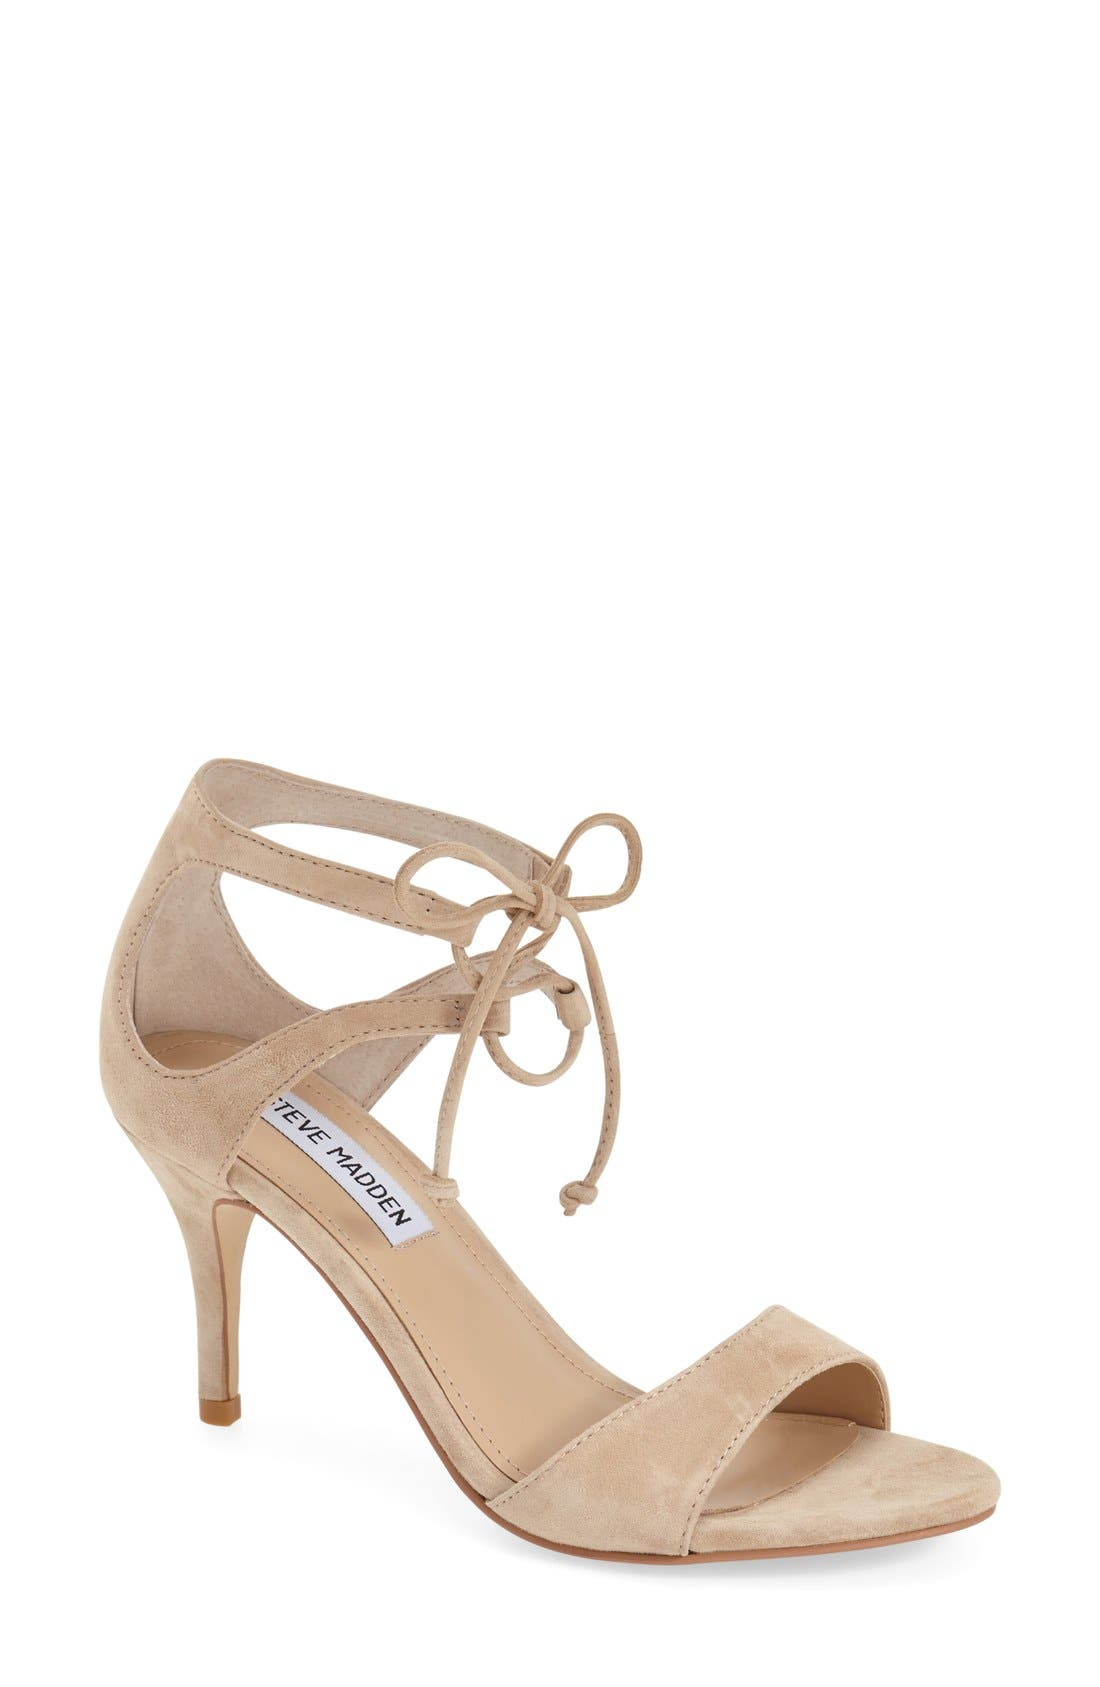 'Salsaa' Lace-Up Ankle Strap Sandal,                             Main thumbnail 2, color,